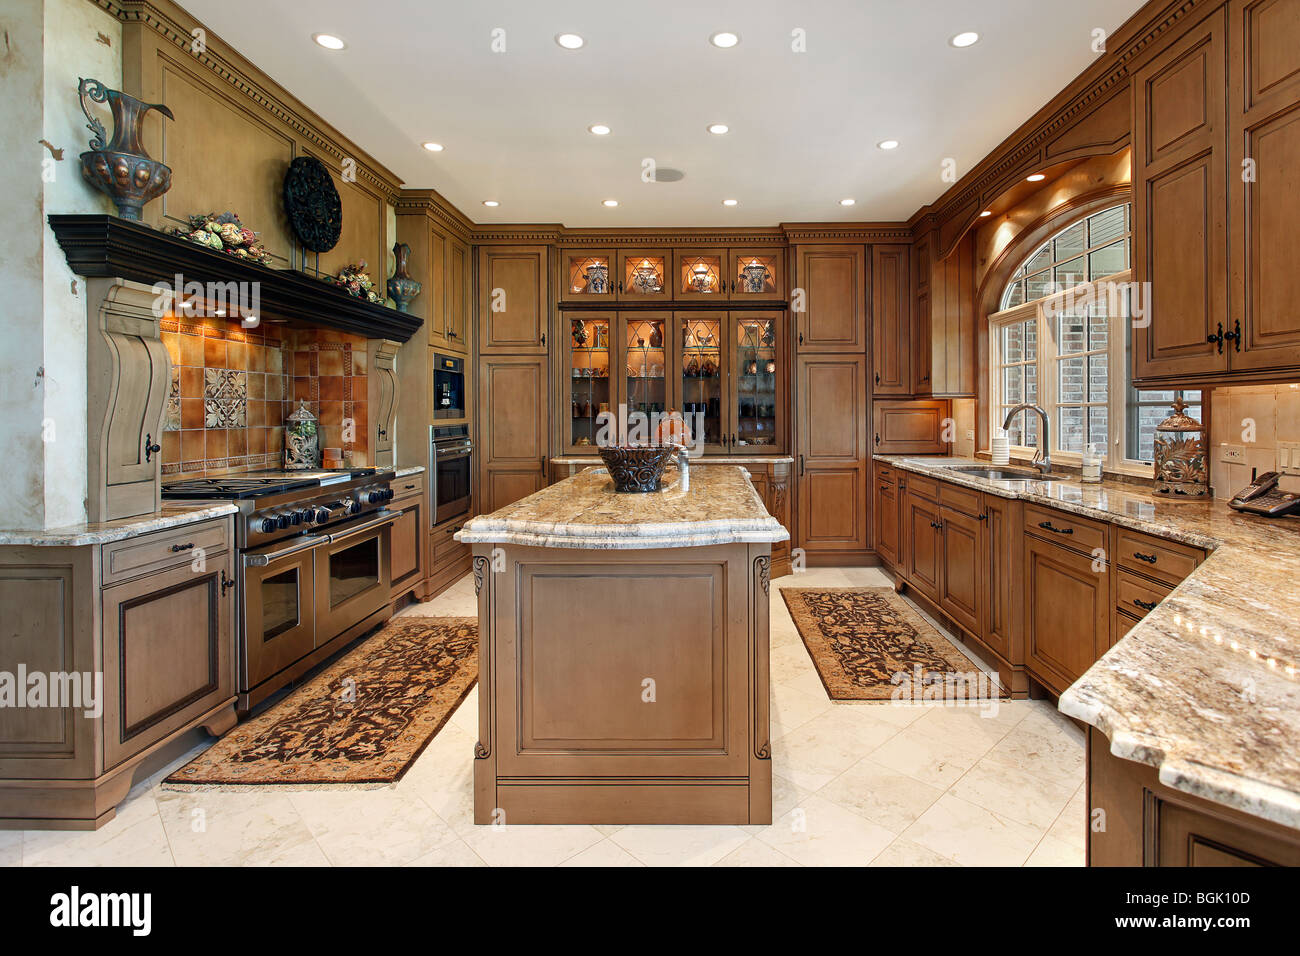 Country Kitchen In Luxury Home With Tiled Stove Backsplash Stock